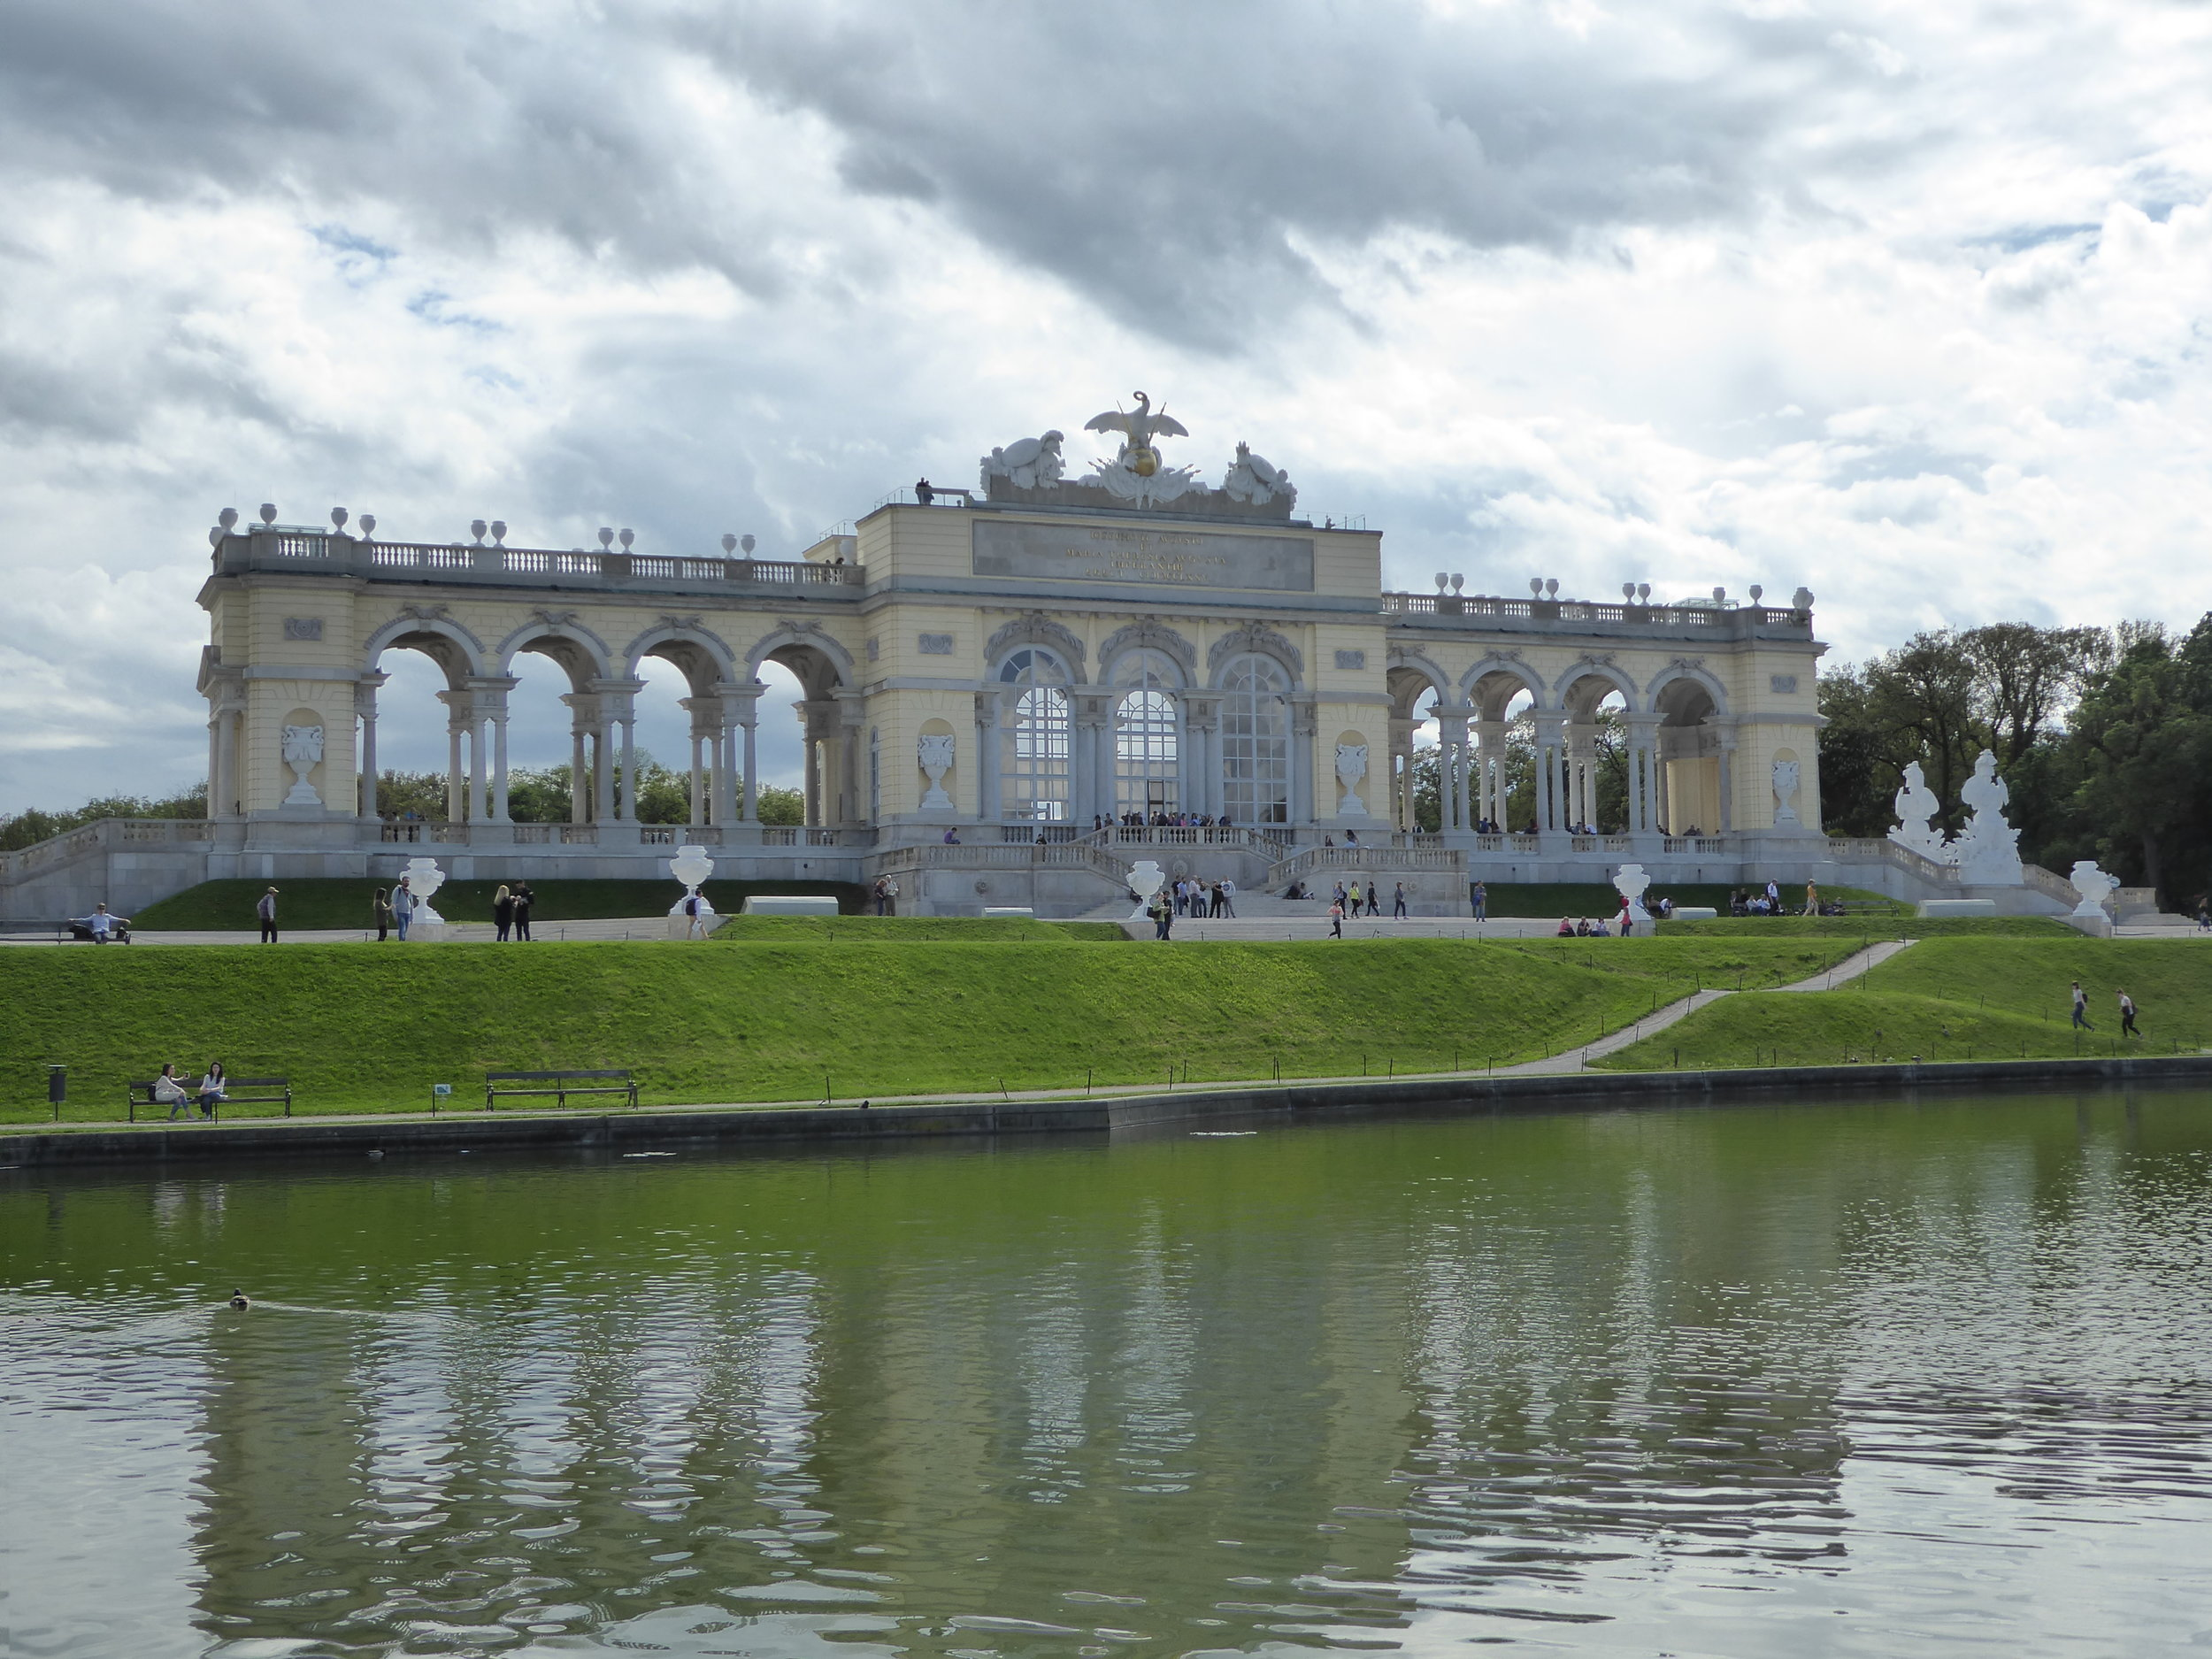 Walking to up the hill in back of Schrönbrunn Palace.